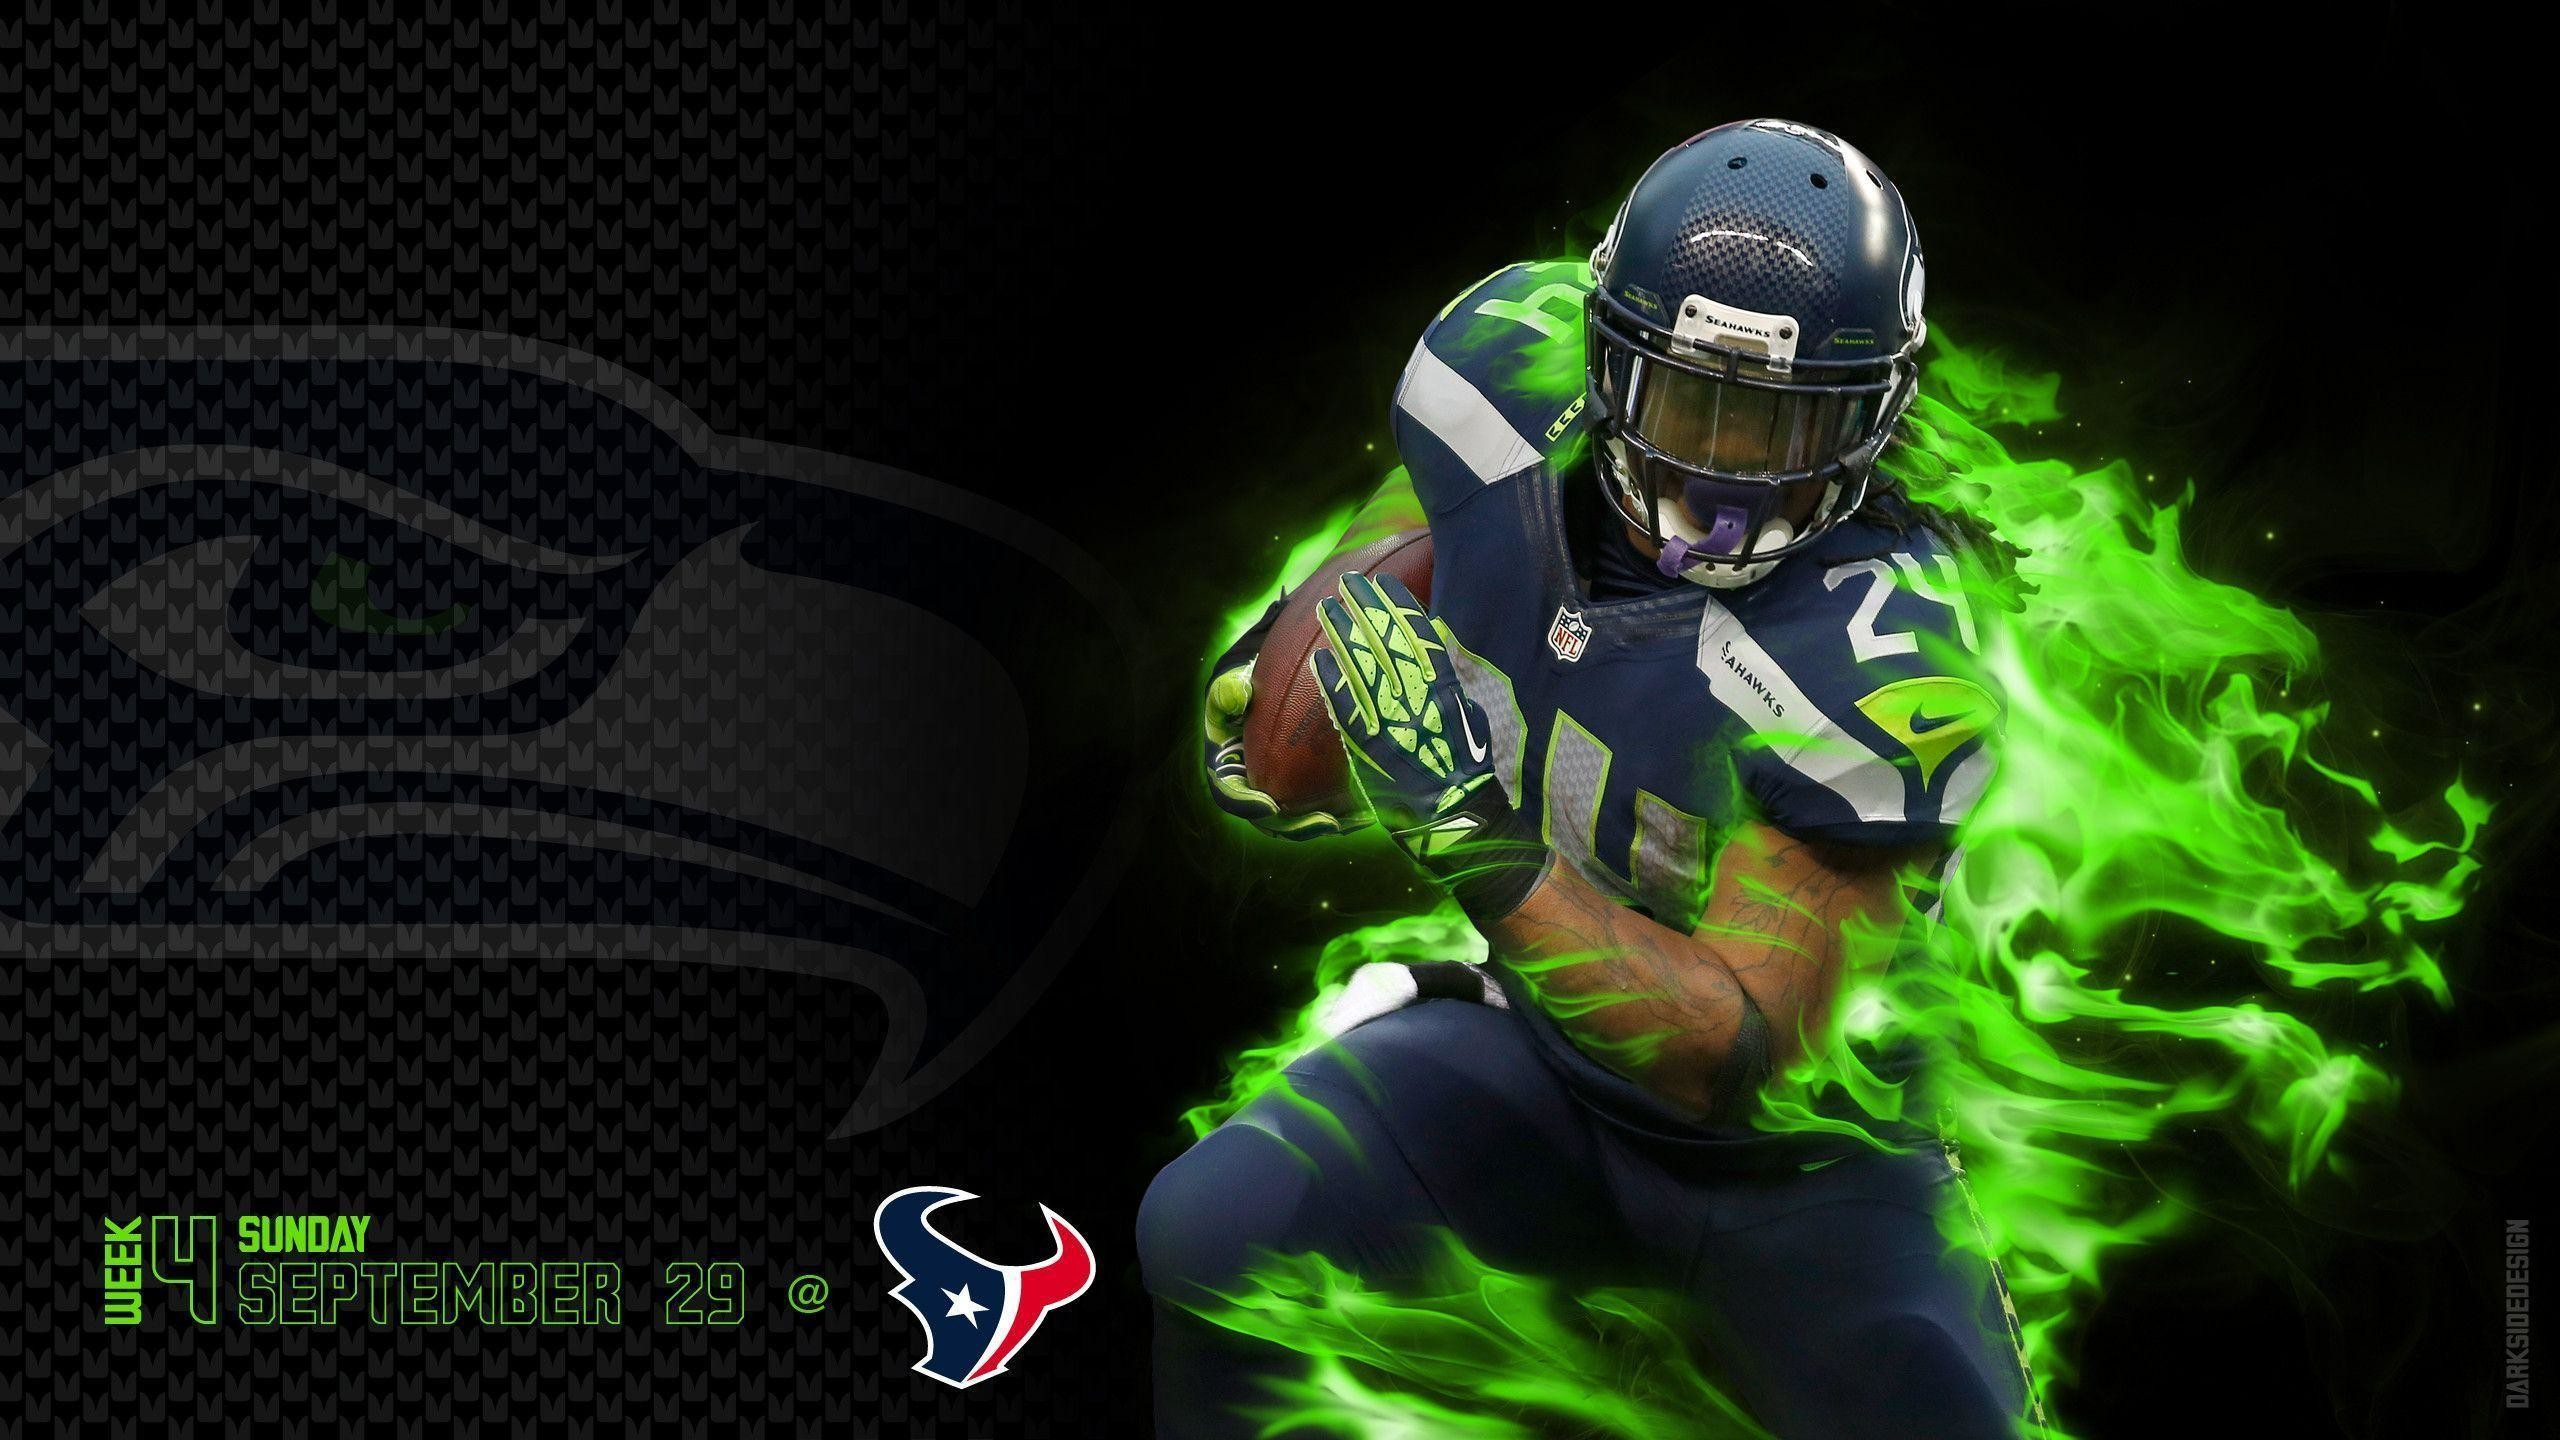 Cool Nfl Backgrounds Posted By Sarah Peltier